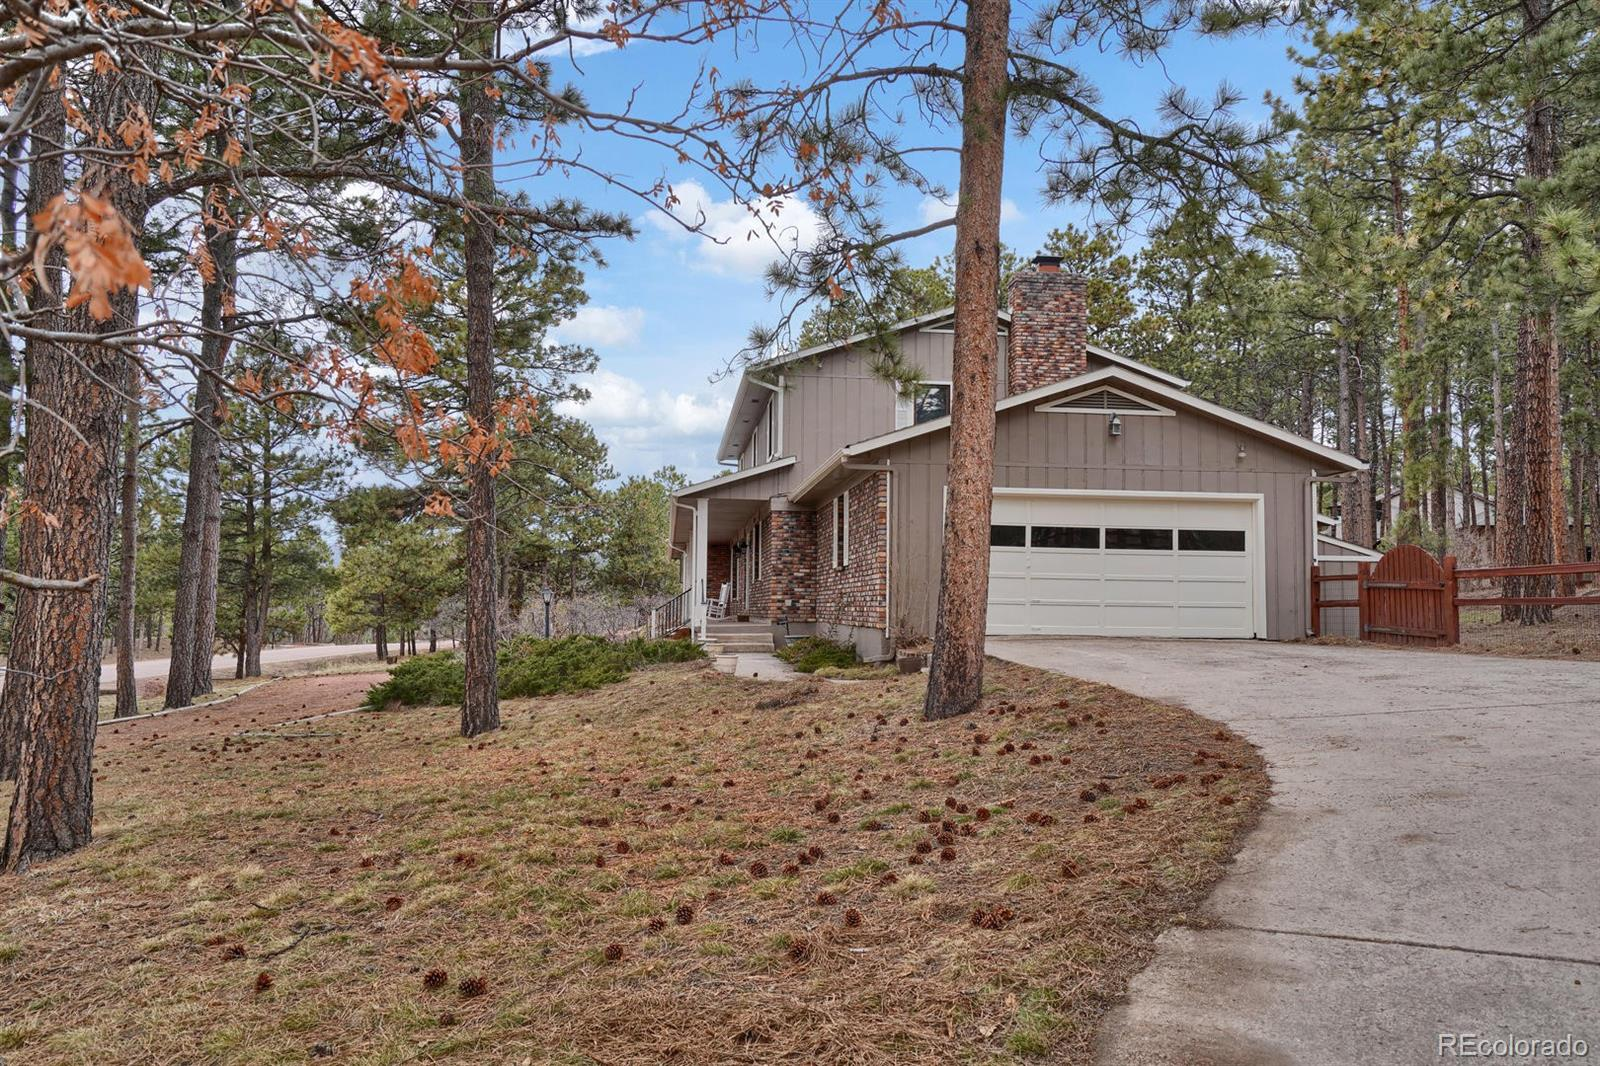 MLS# 2861241 - 3 - 19365 Doewood Drive, Monument, CO 80132